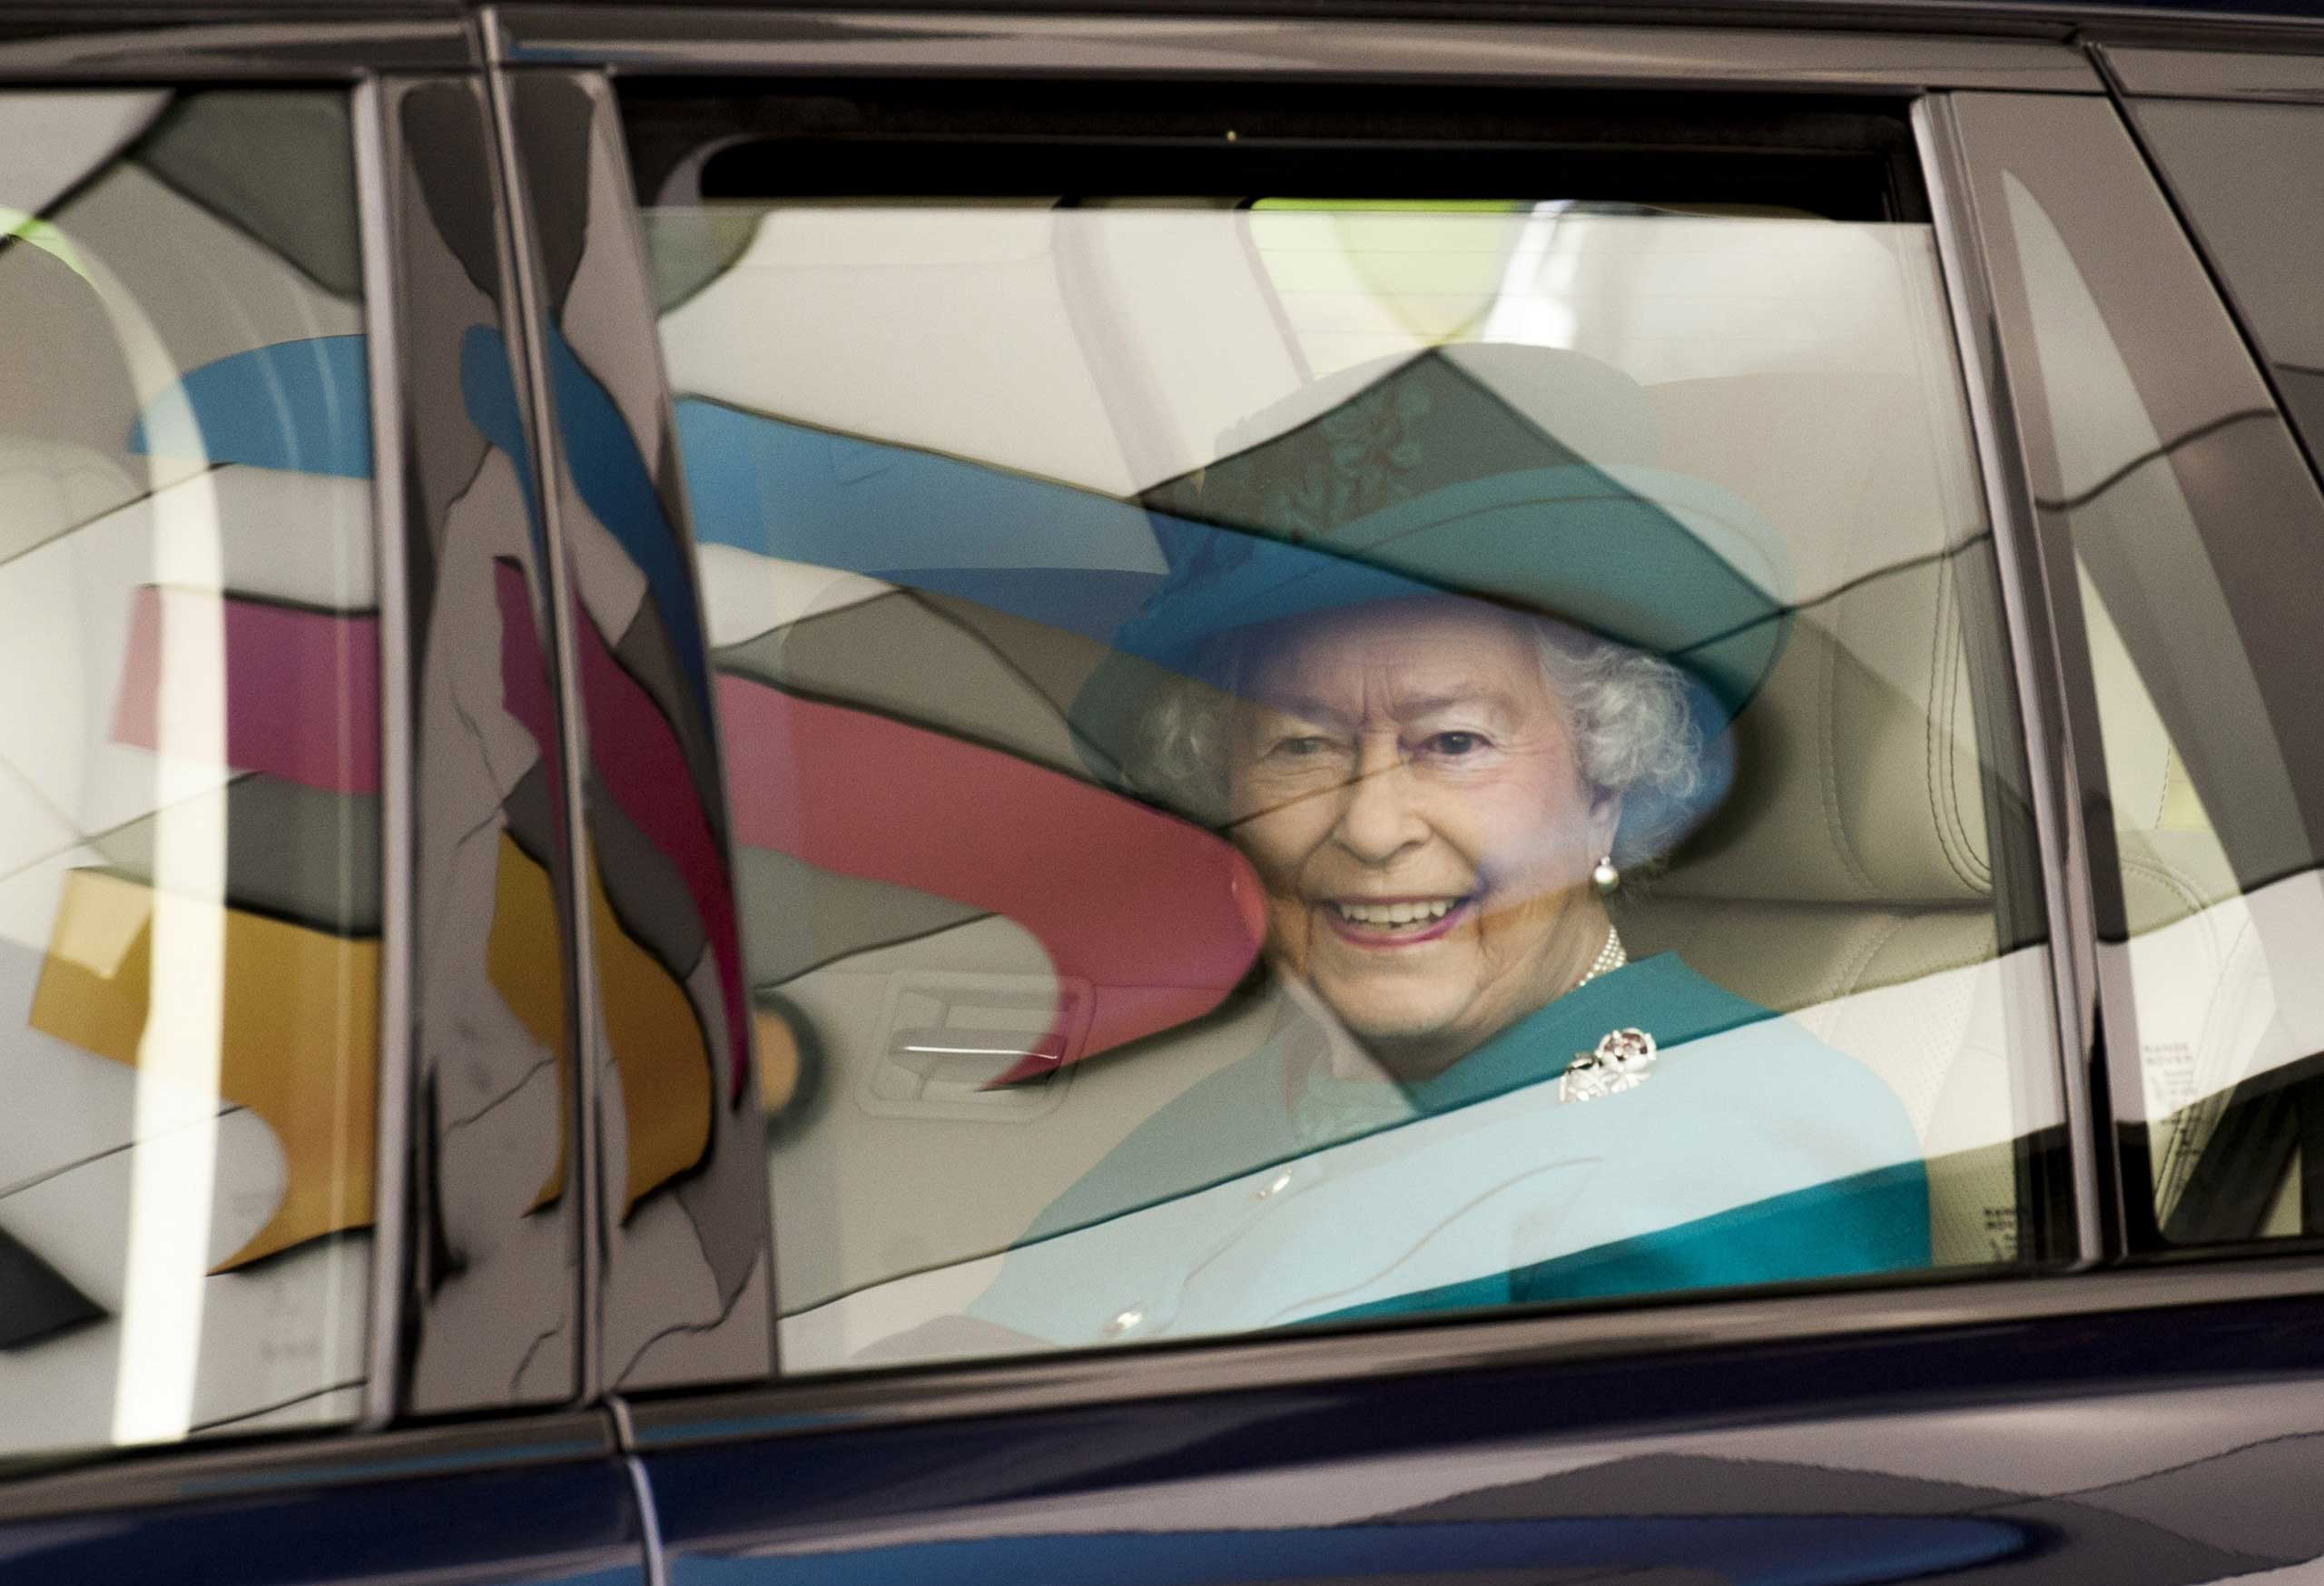 Oct. 30, 2014. Queen Elizabeth II leaves following an official visit to International Security Printers to view their work on specialist postage stamps in Wolverhampton, U.K.